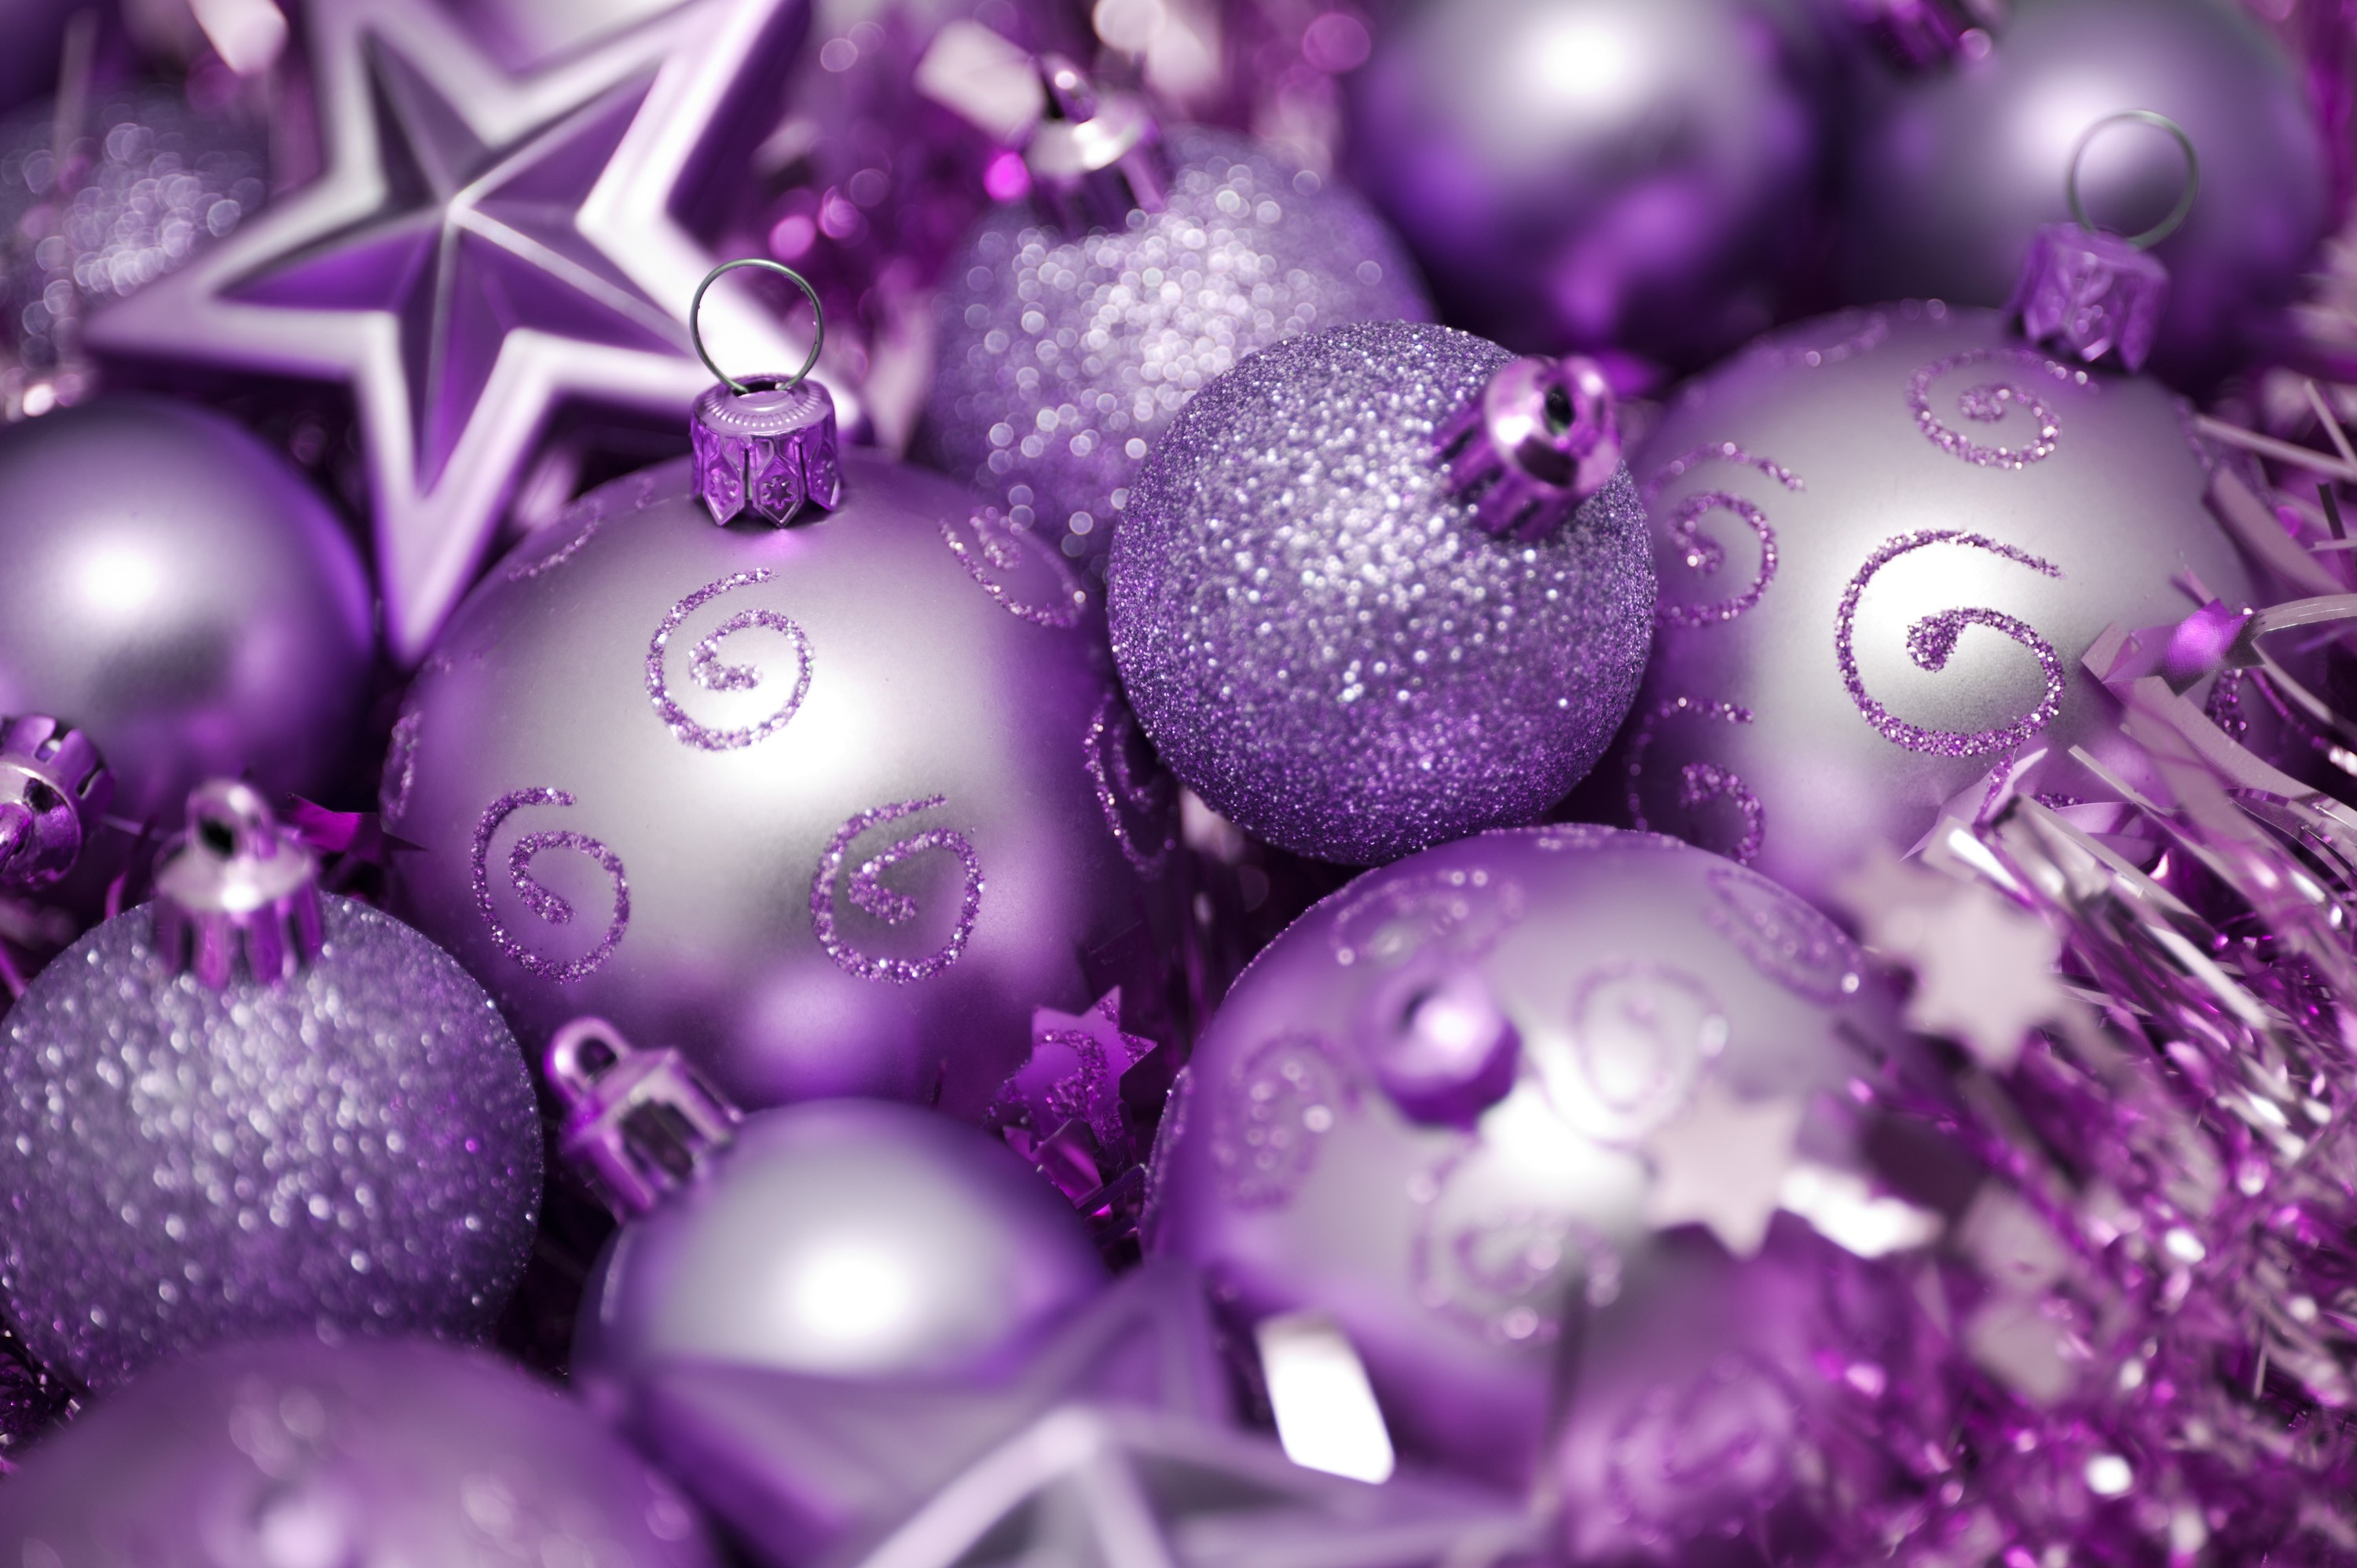 Lavender christmas ornaments - Your Resolution 1024x1024